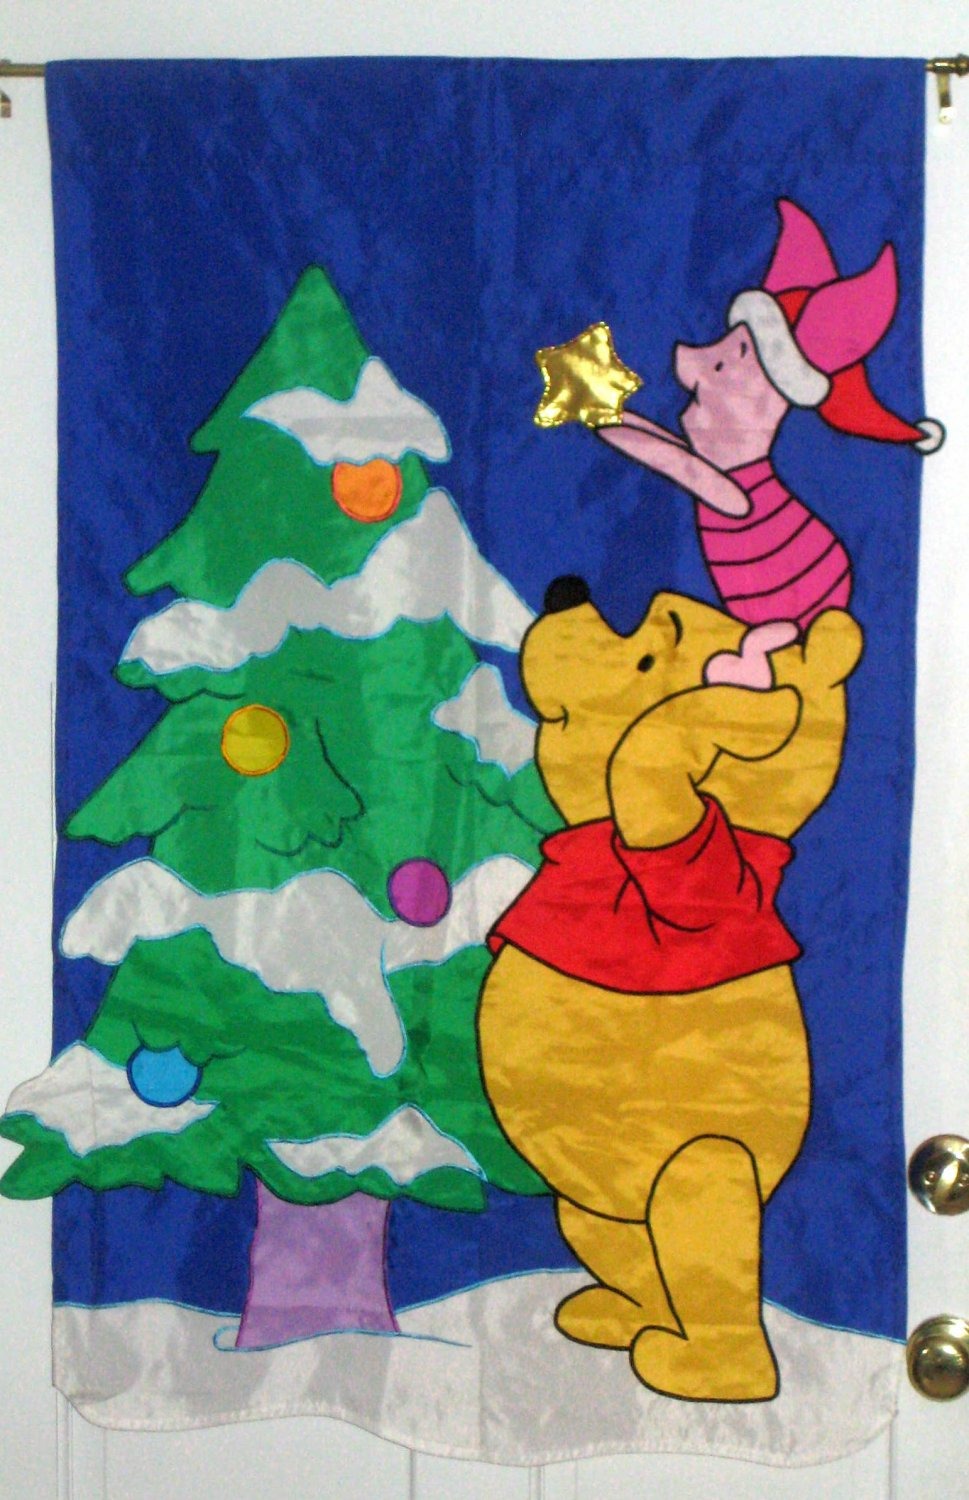 SOLD Winnie the Pooh Christmas Tree Decorative Garden Flag 28 x 44